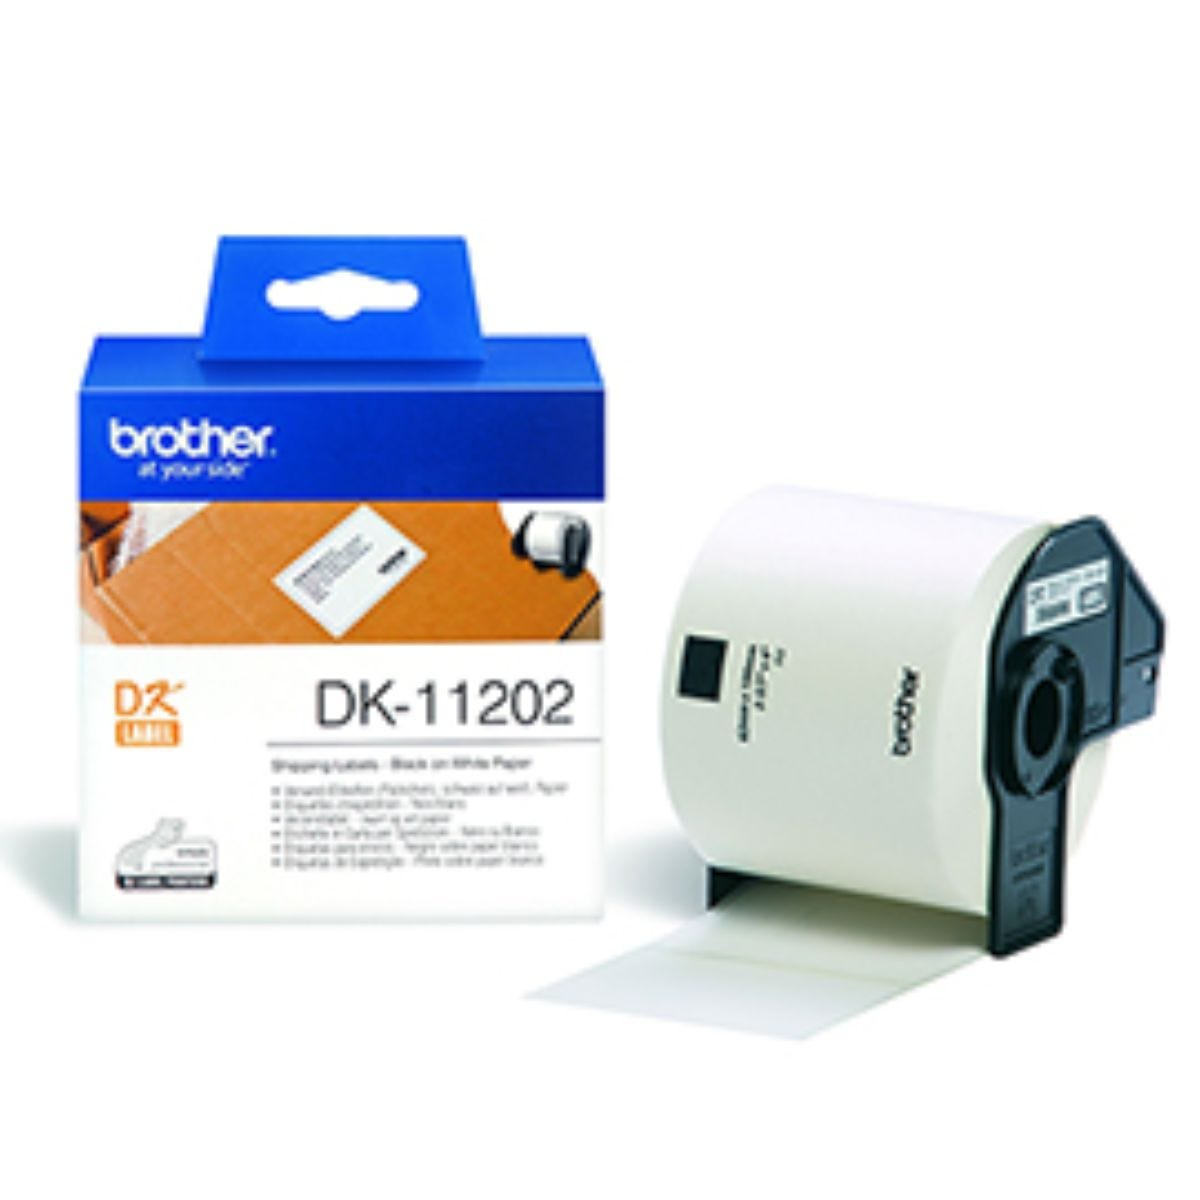 Brother DK11202 Shipping Labels.